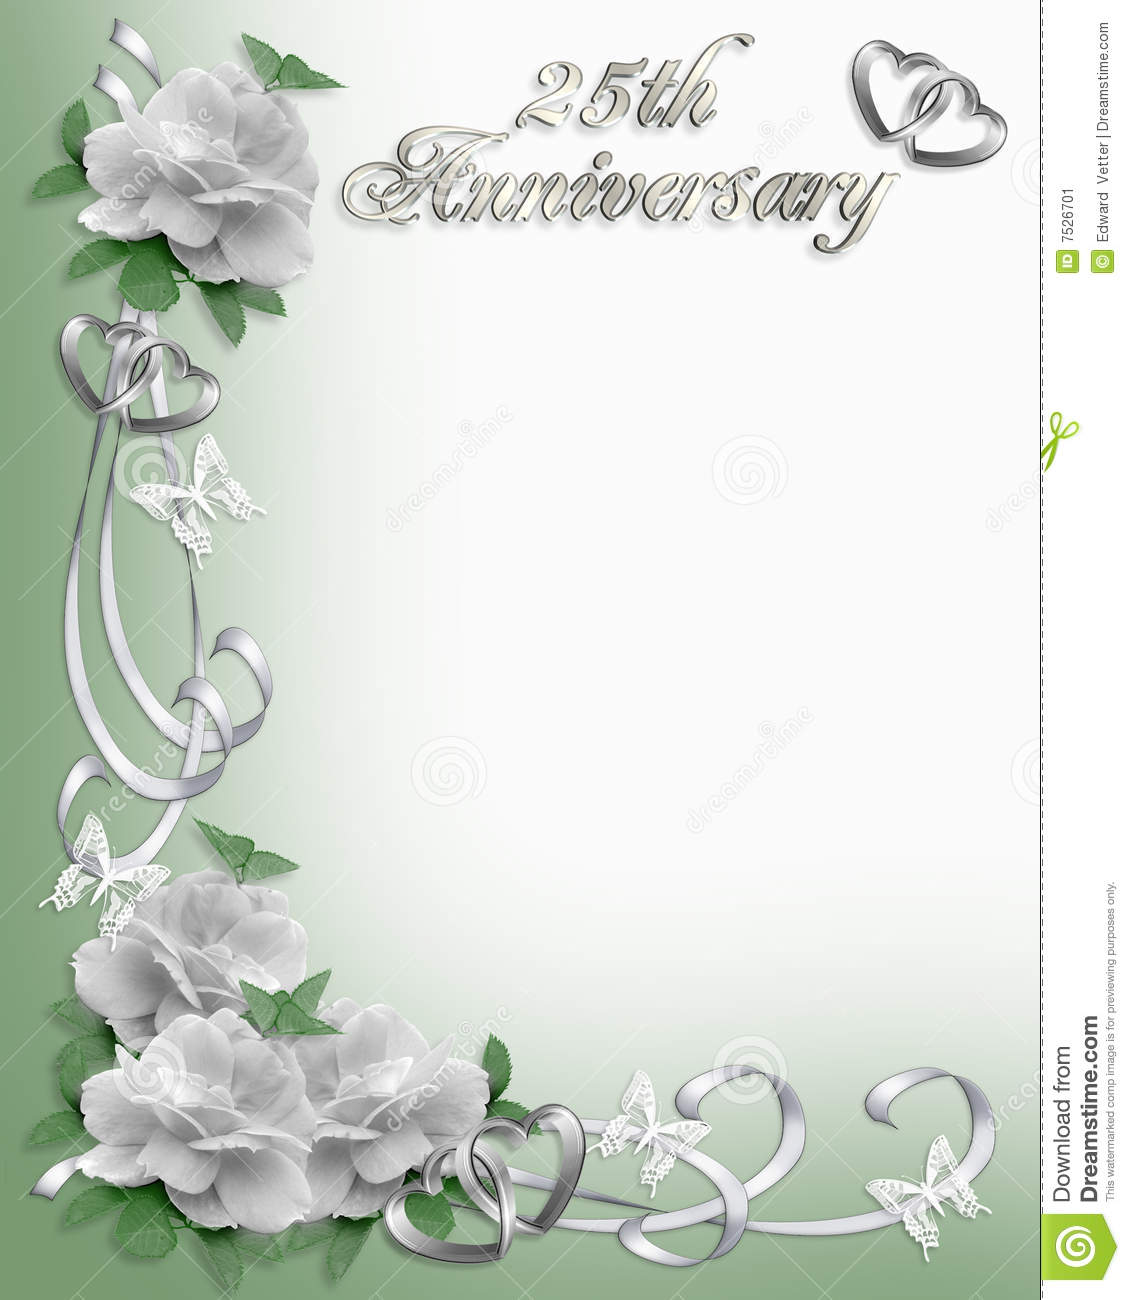 Image and illustration composition white roses design element for 25th wedding anniversary invitation background, border or frame on soft green with copy ...